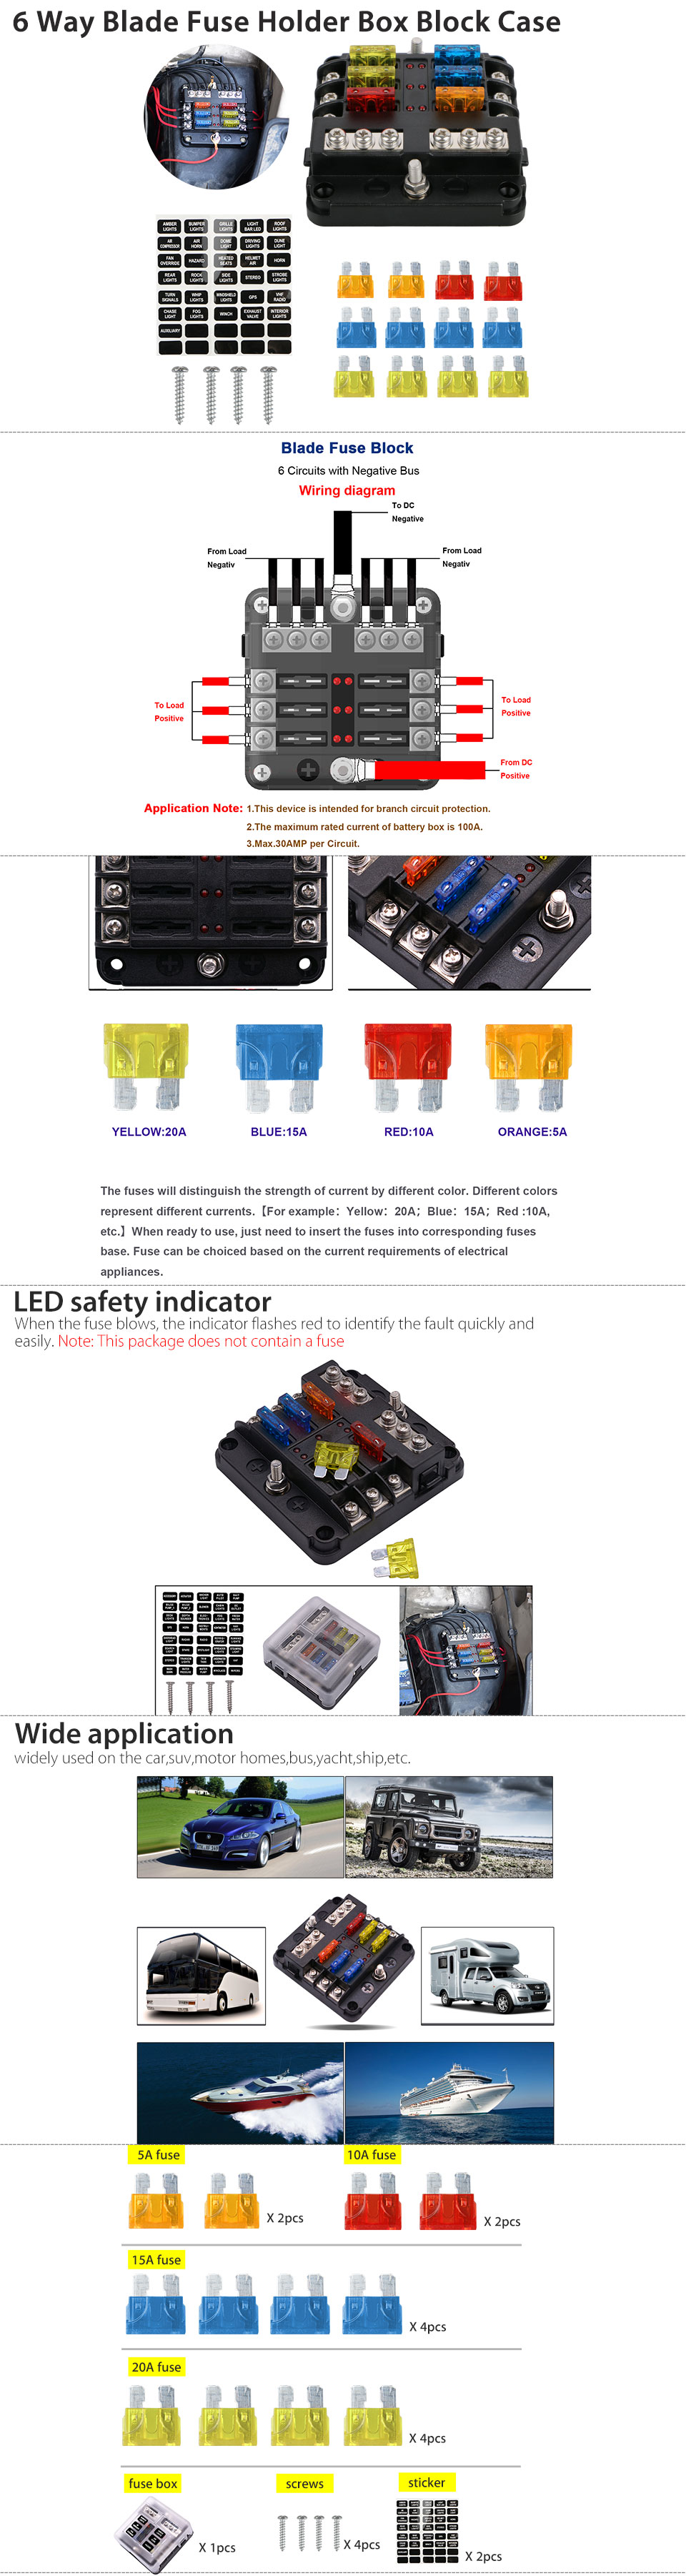 6 Way Blade Fuse Holder Box Block Case 12v 24v Car Truck Boat Marine Bus Product Features